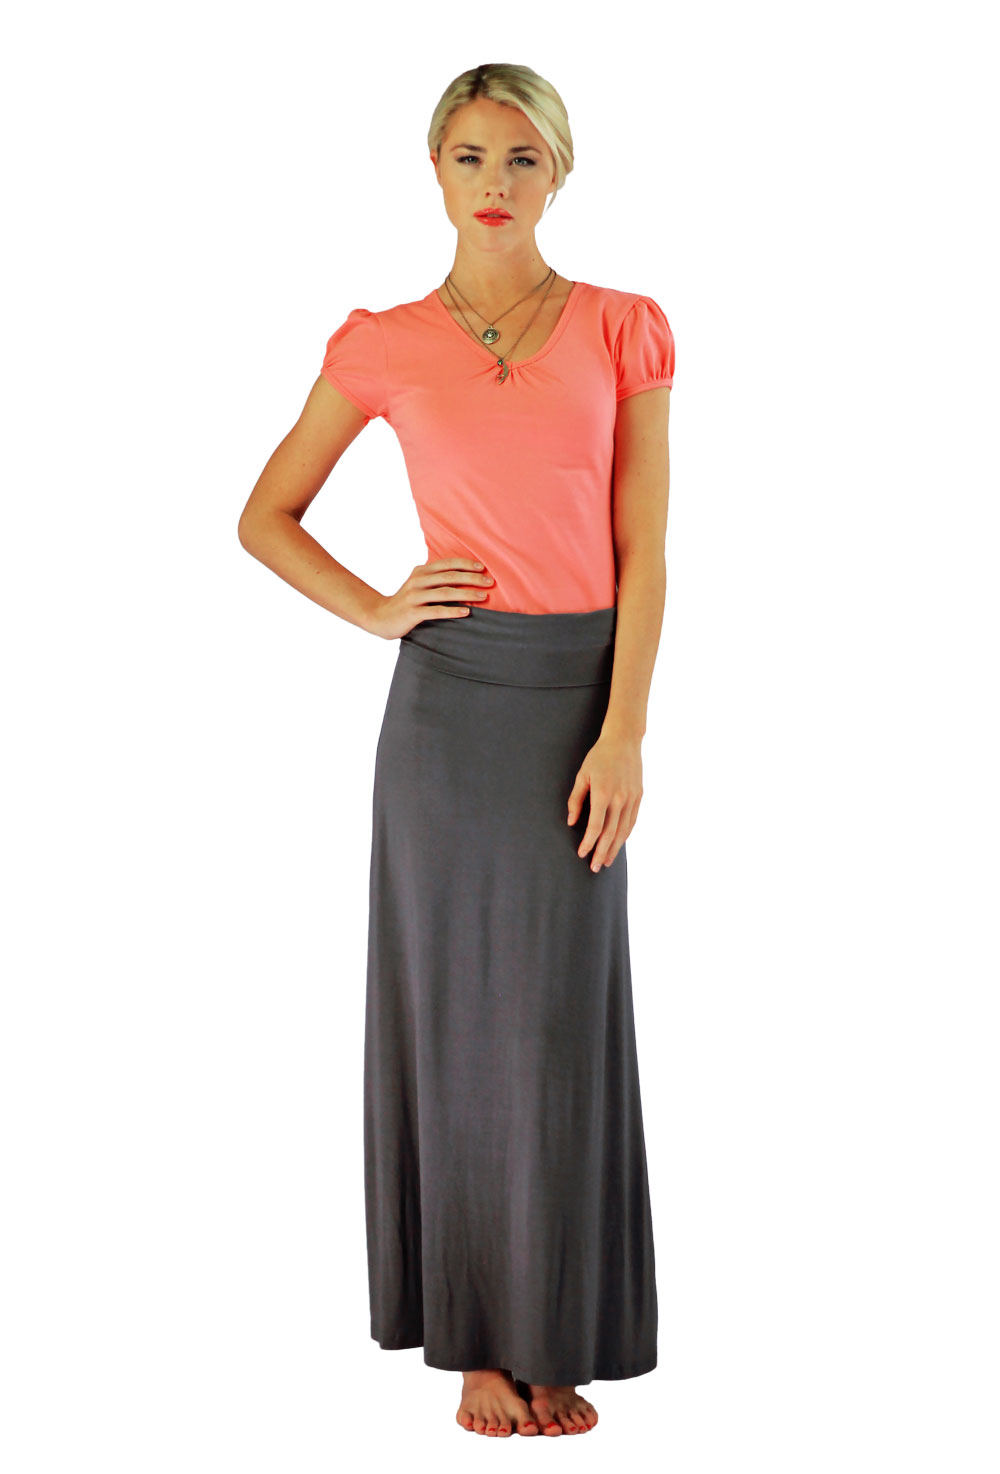 Modest Maxi Skirt in Dark Gray